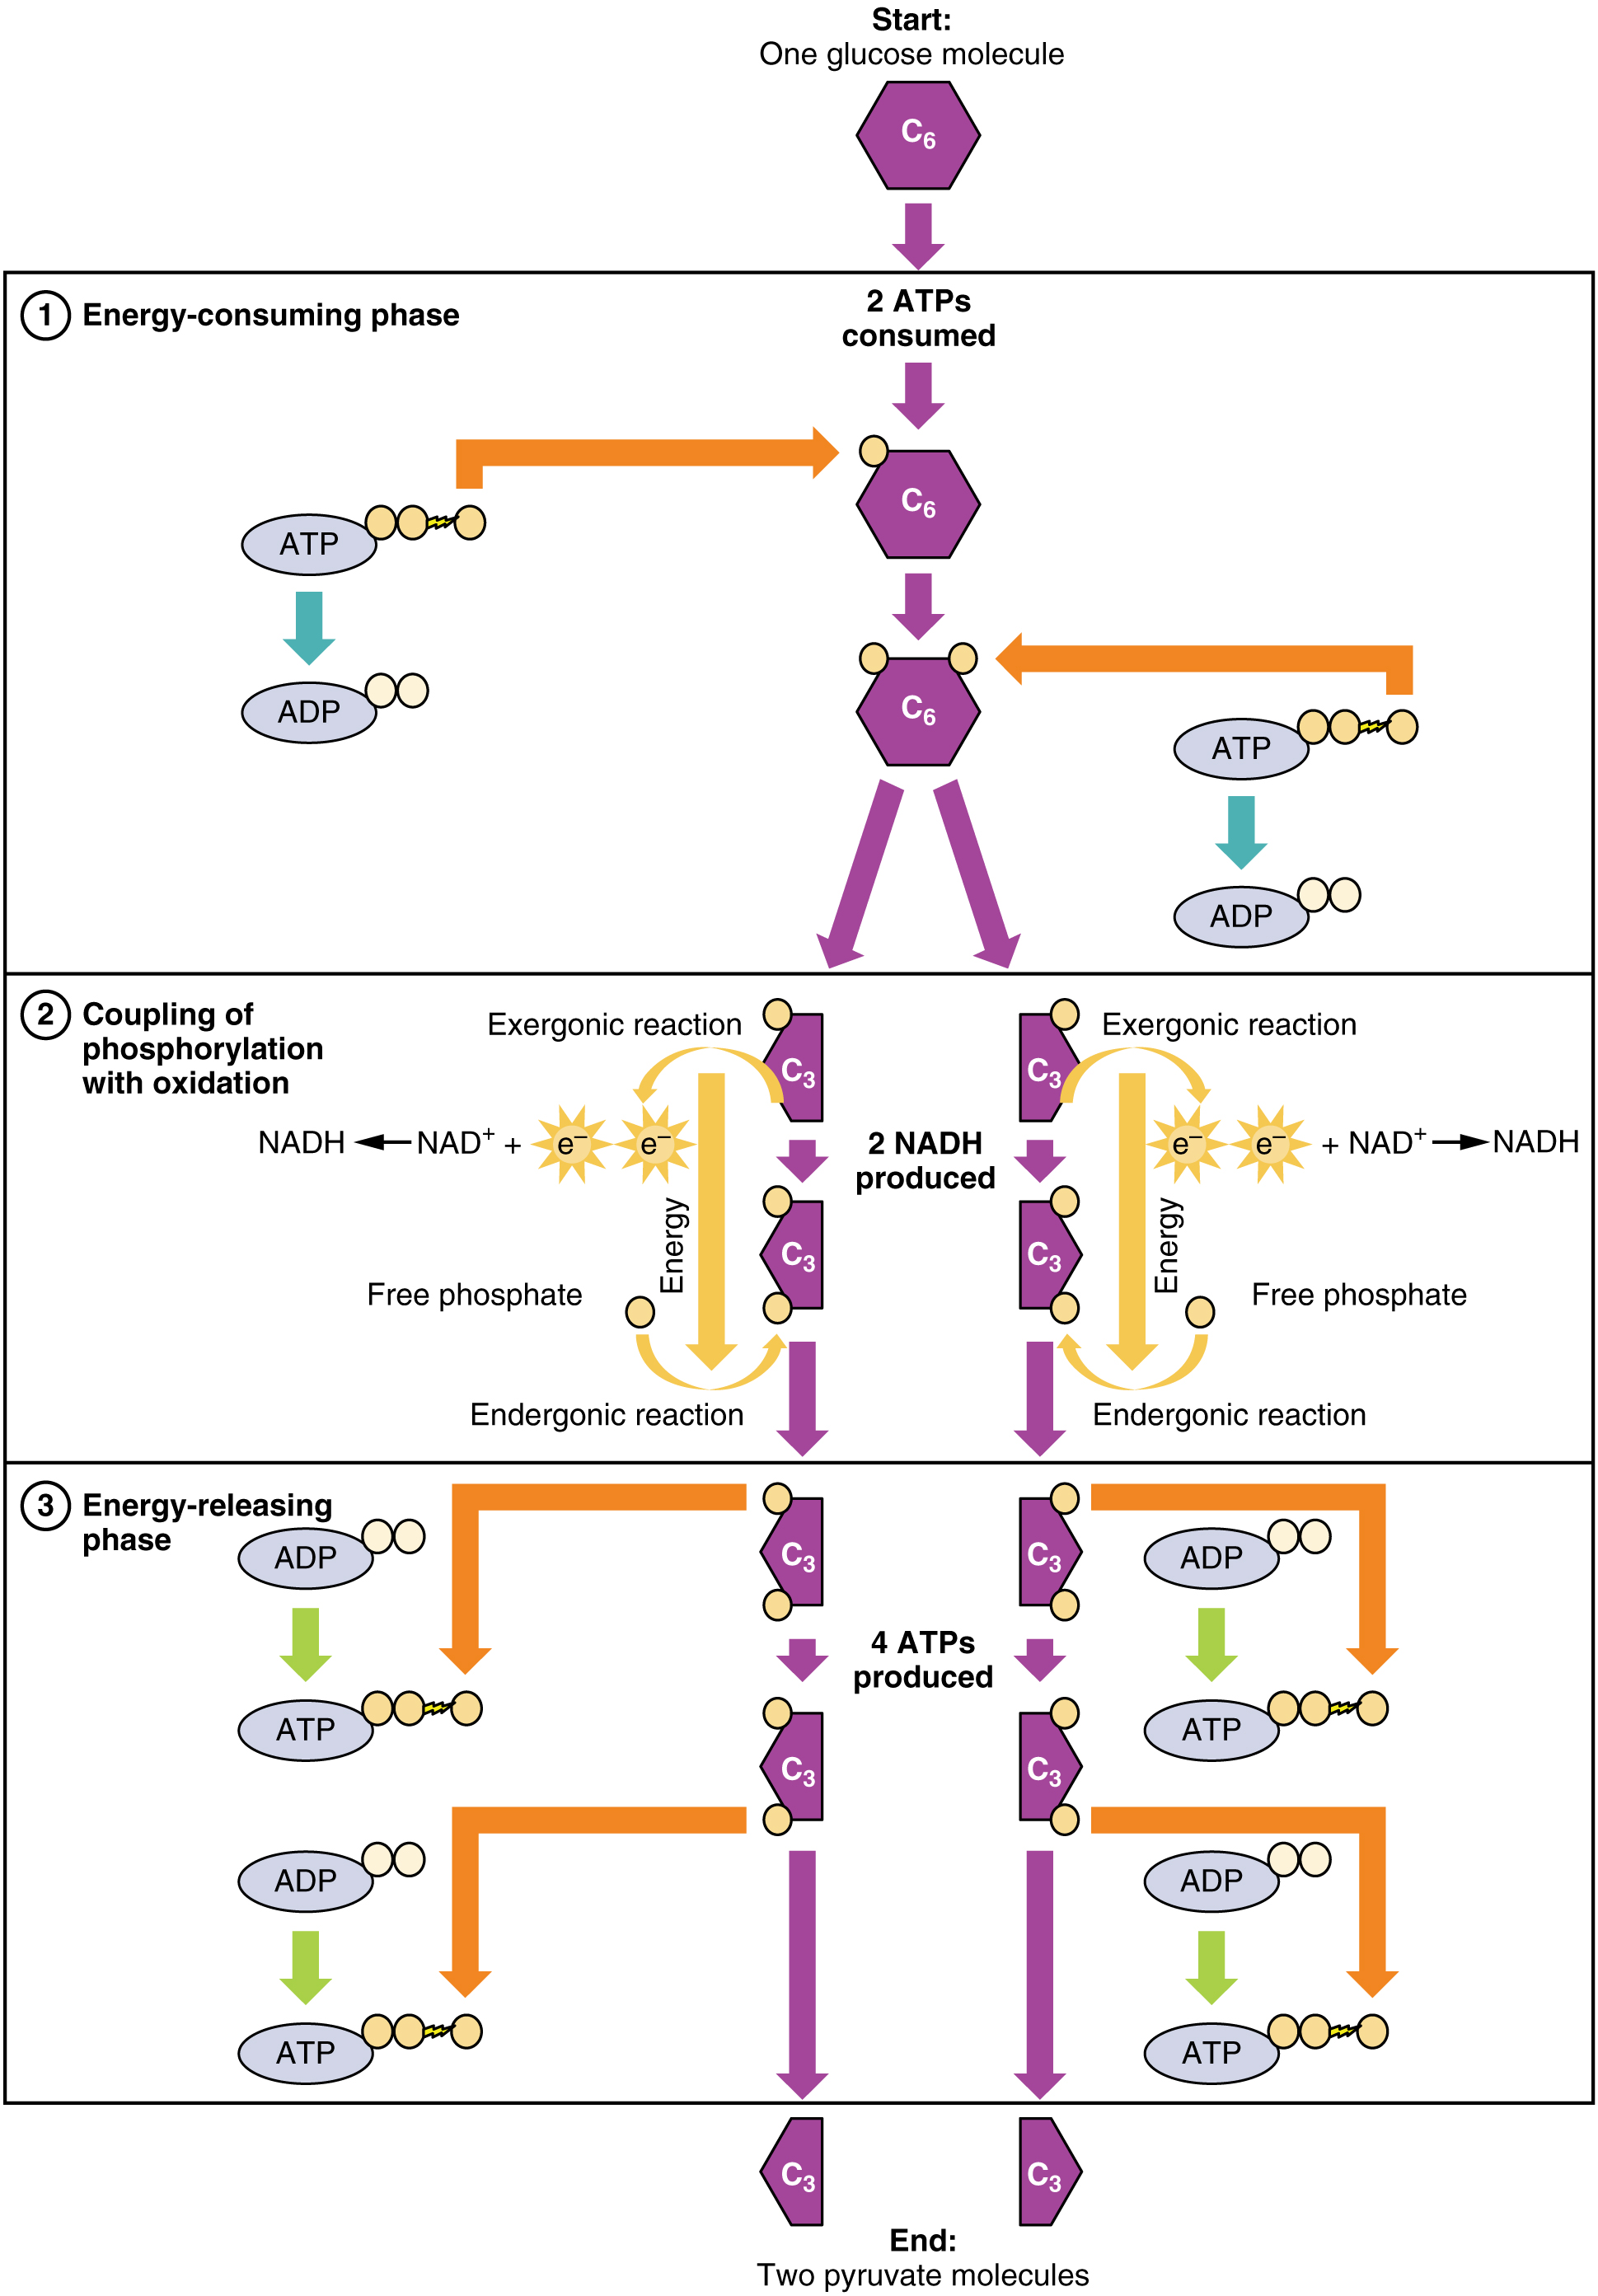 This flowchart shows the different steps in glycolysis in detail. The top panel shows the energy-consuming phase, the middle panel shows the coupling of phosphorylation with oxidation, and the bottom panel shows the energy-releasing phase.